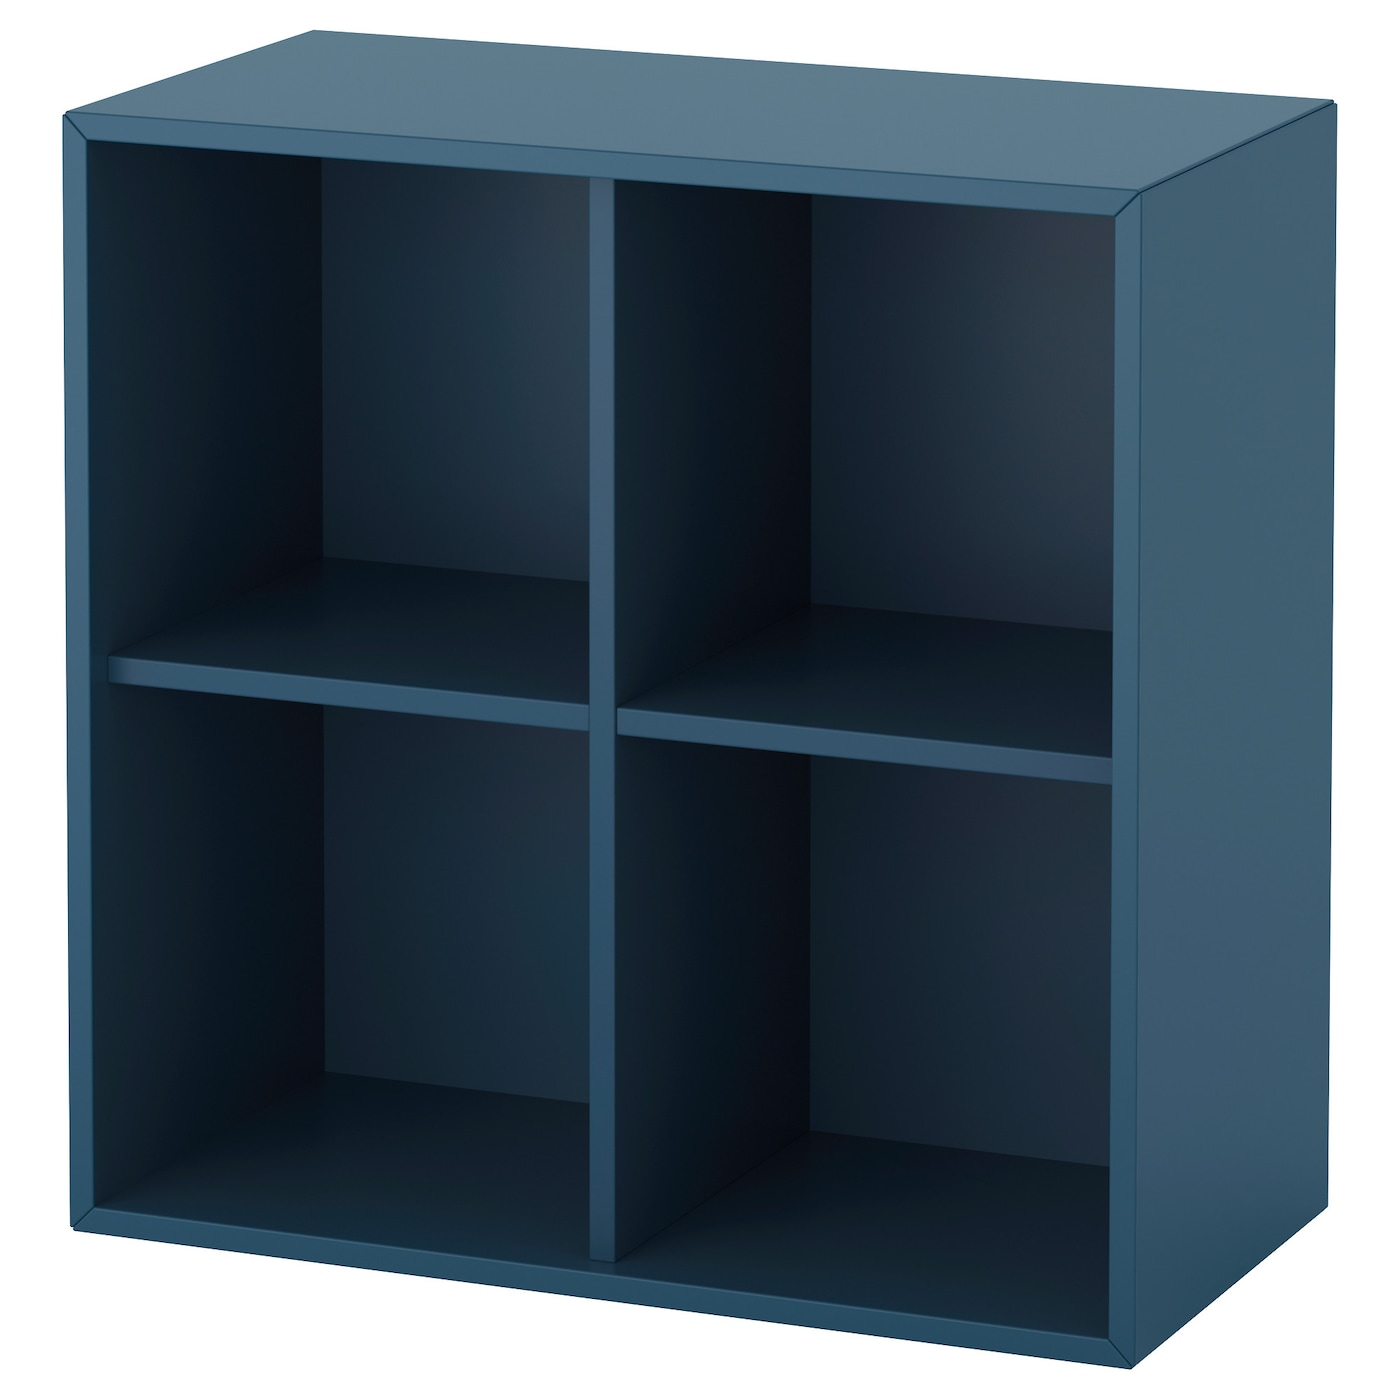 eket cabinet with 4 compartments dark blue 70x35x70 cm ikea